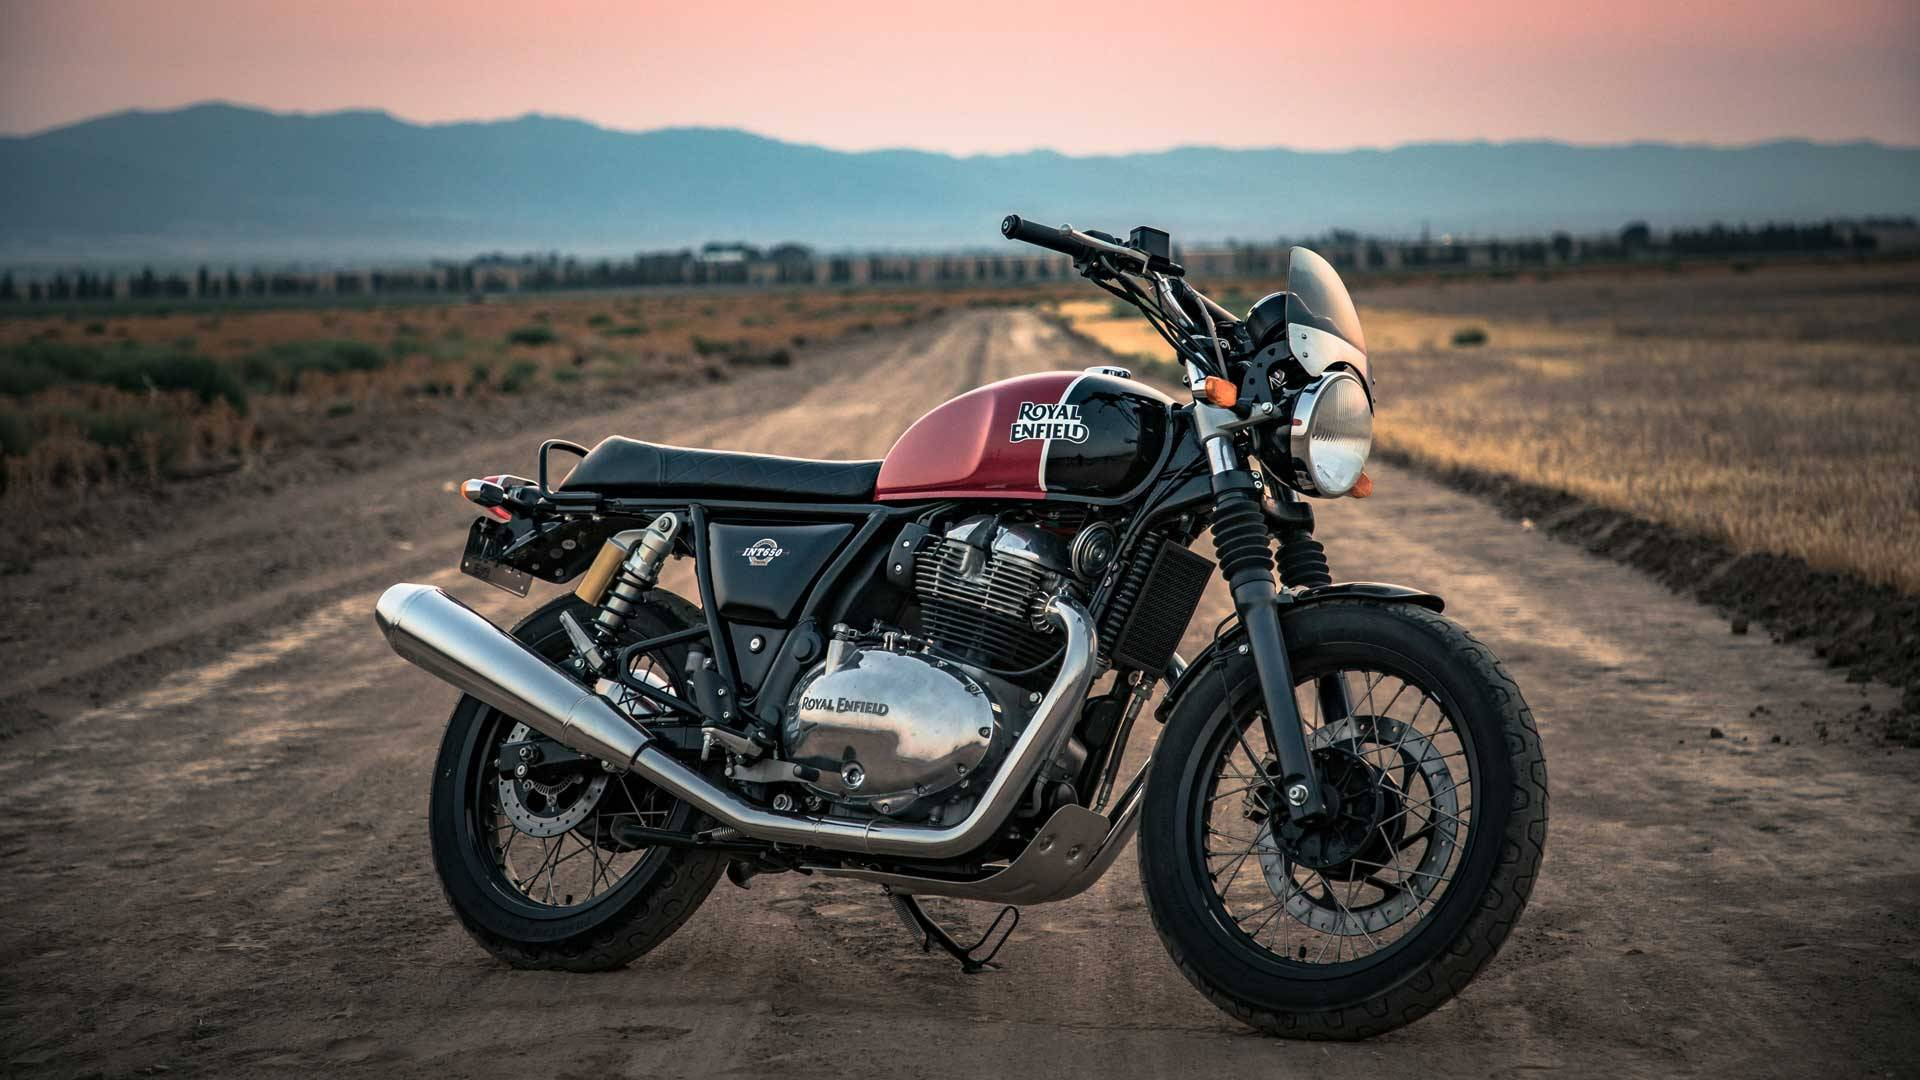 Royal Enfield Wants To Release A New Bike Every Three Months